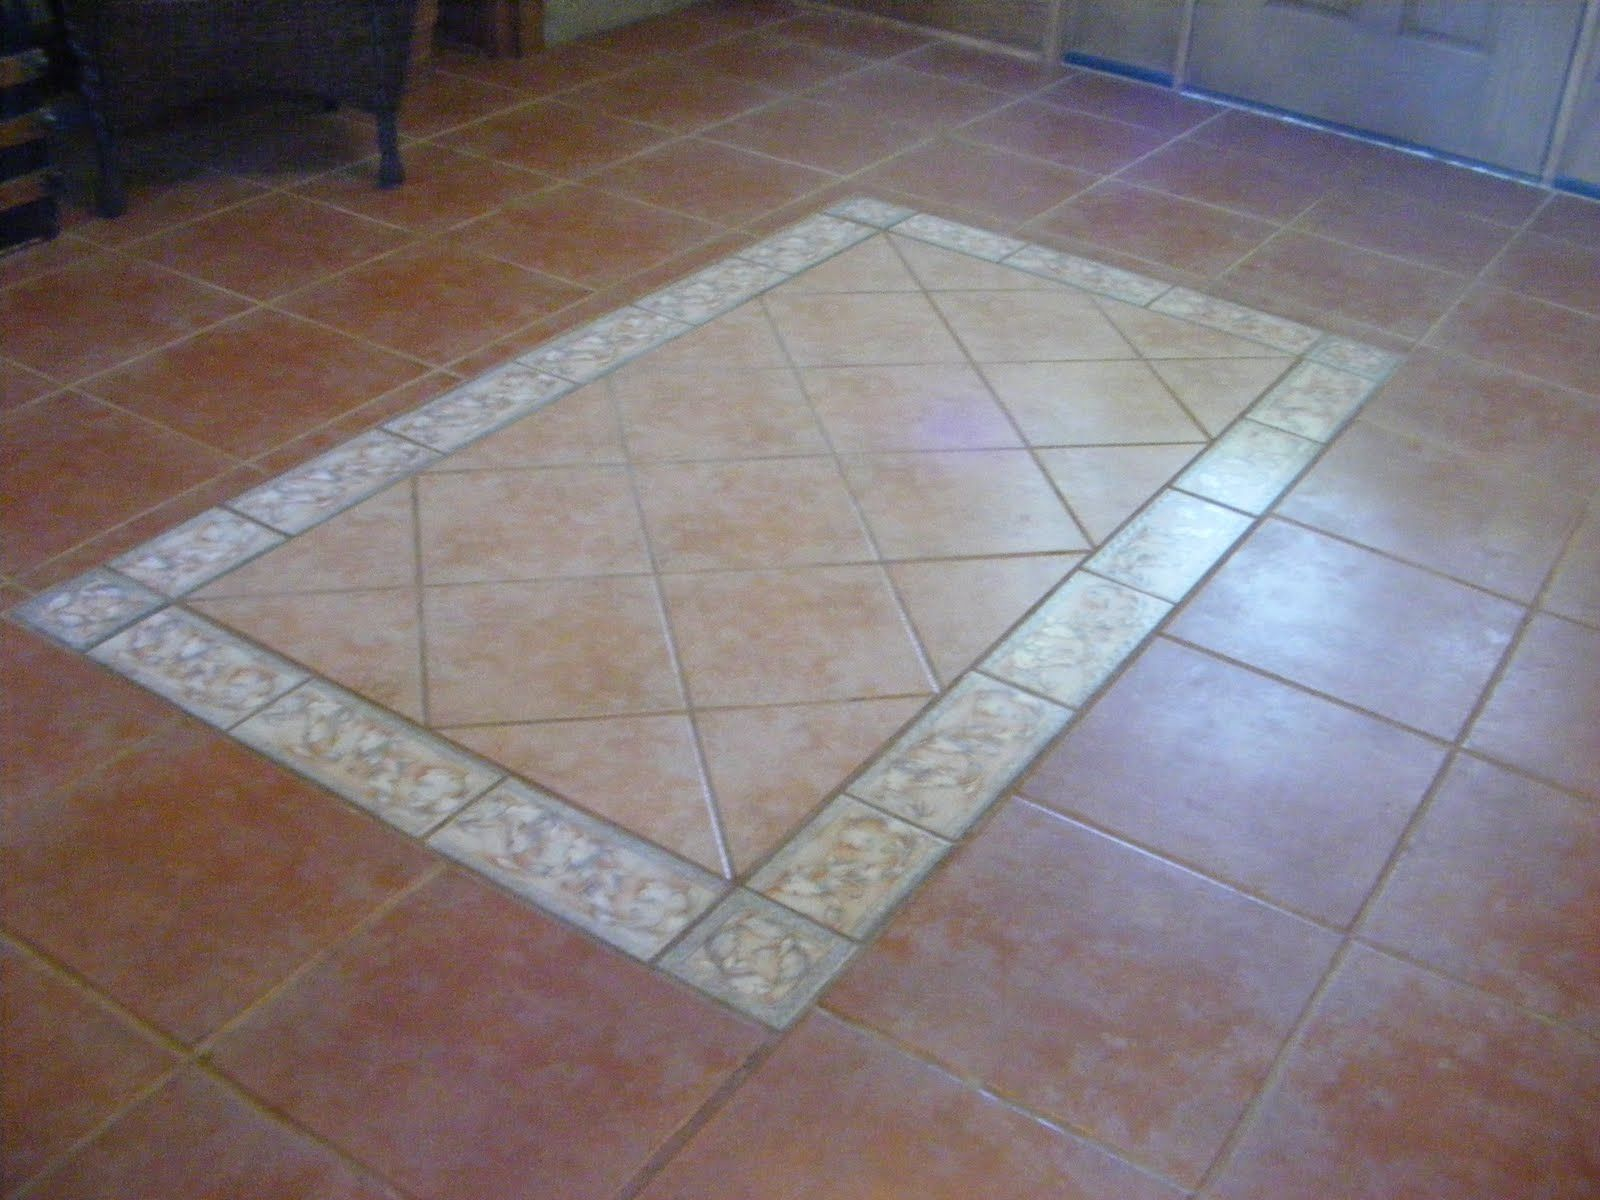 Tile Flooring Design Ideas view in gallery 17 best flooring ideas on pinterest ceramic tile Tile Flooring Designs Ideas Natural Clay Ceramic Tiles With Brown Tile Design Tile Countertops Of Awesome Pictures Of Tile Floor Patterns Design From